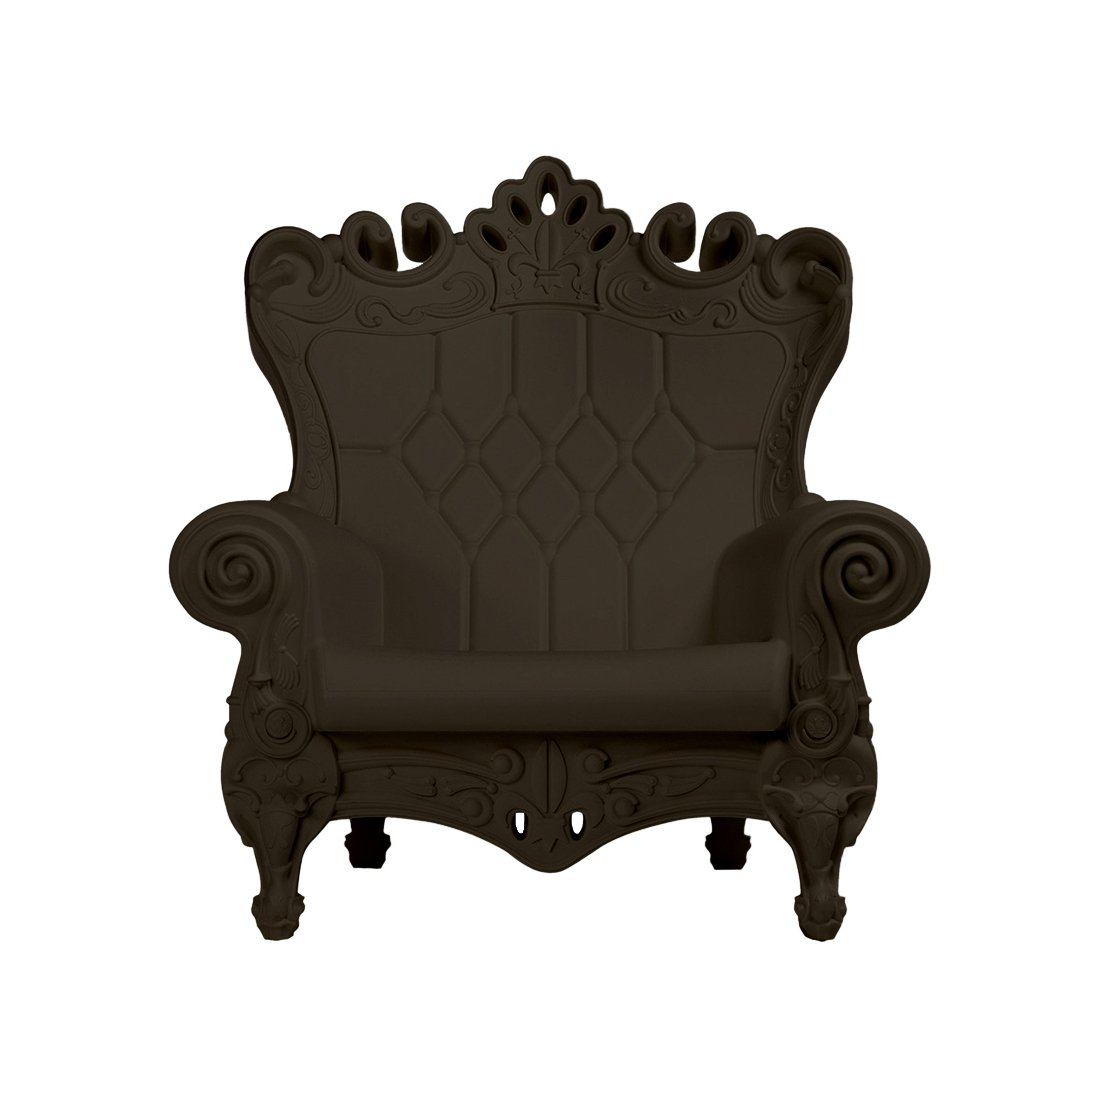 Design of Love - Slide Design - Little Queen of Love Baby armchair Chocolate Brown (Original made in Italy)